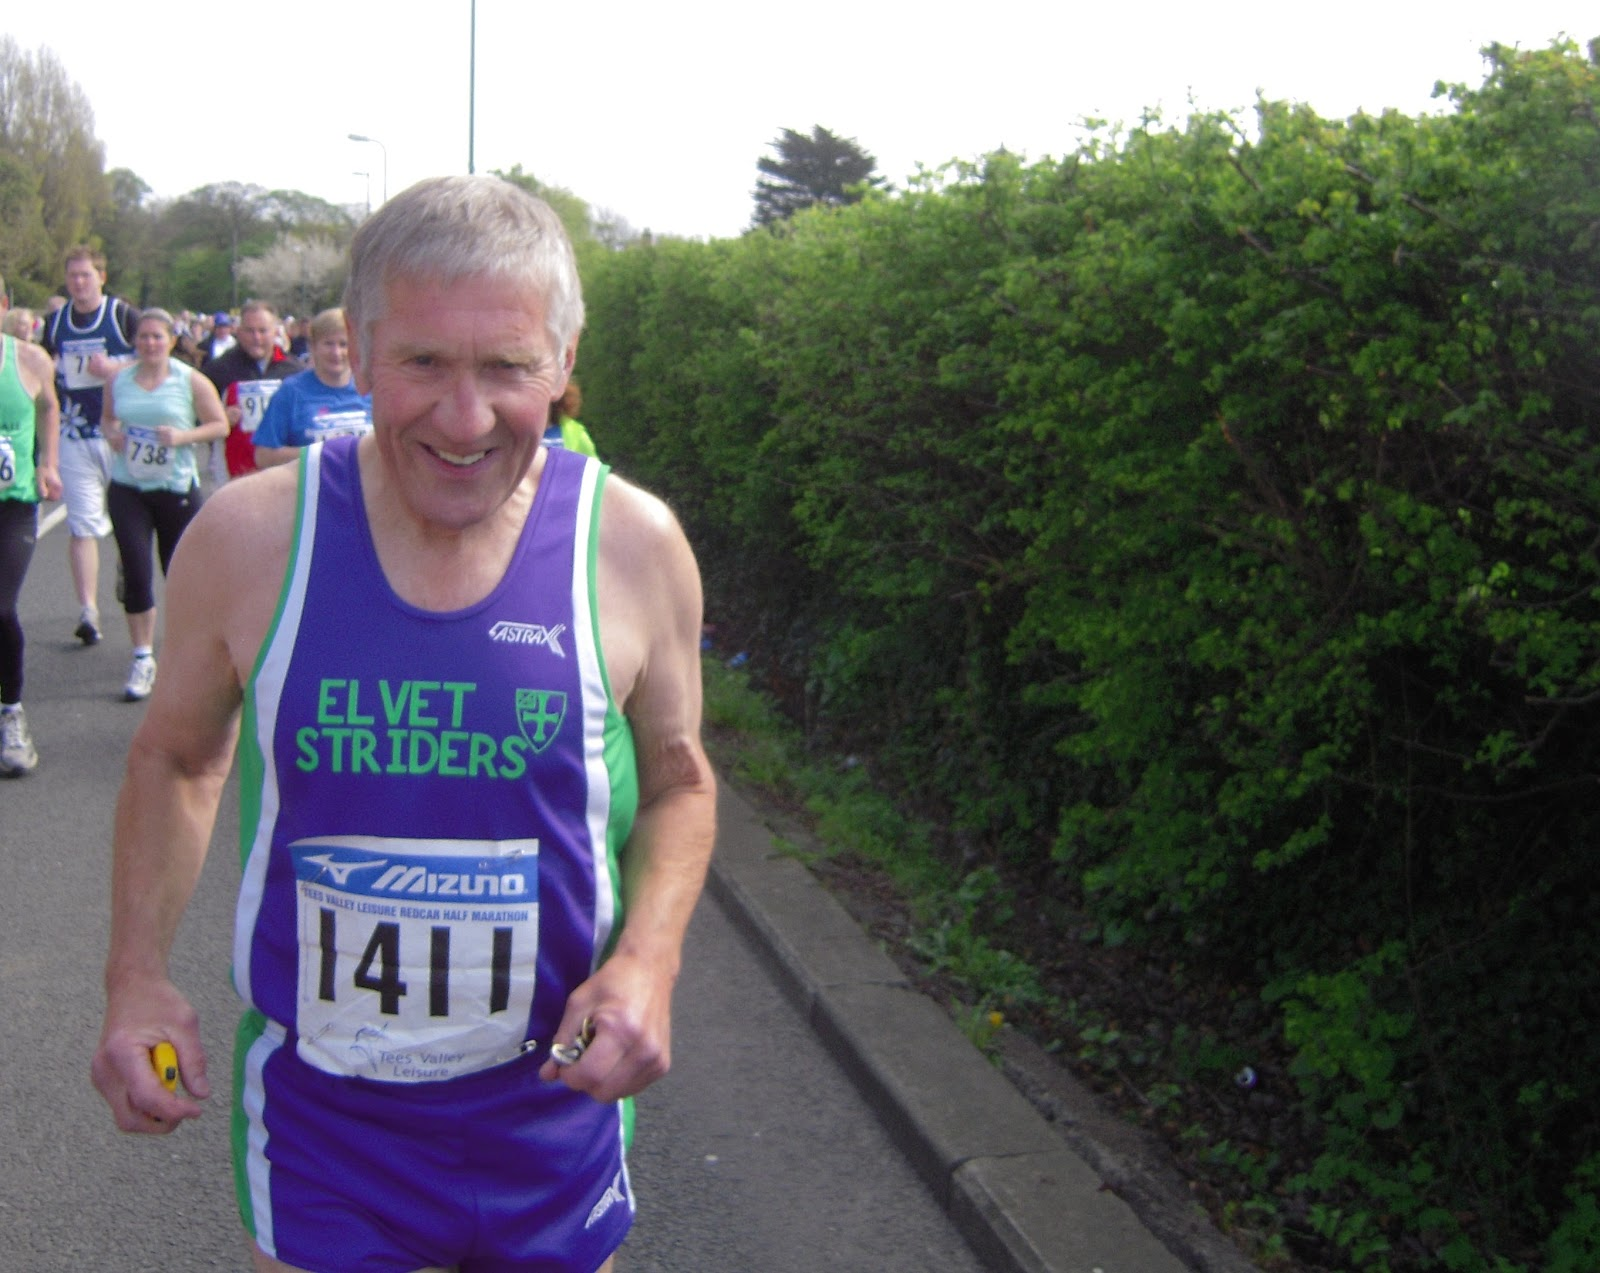 Redcar Half Marathon 2009 - 2009-04-19--09.37.57 (6) (Modified).jpg